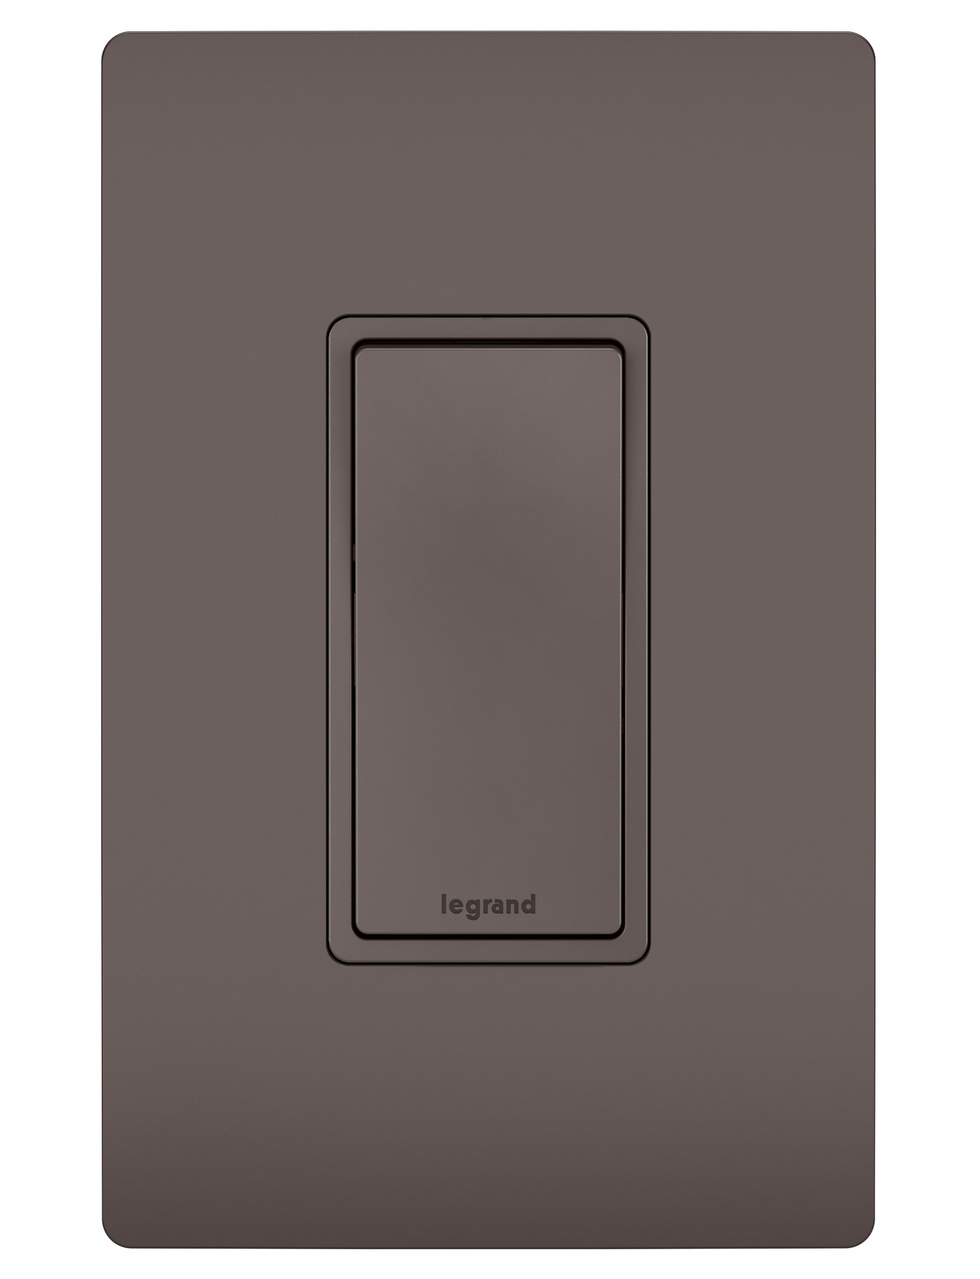 15A 4-Way Switch, Brown